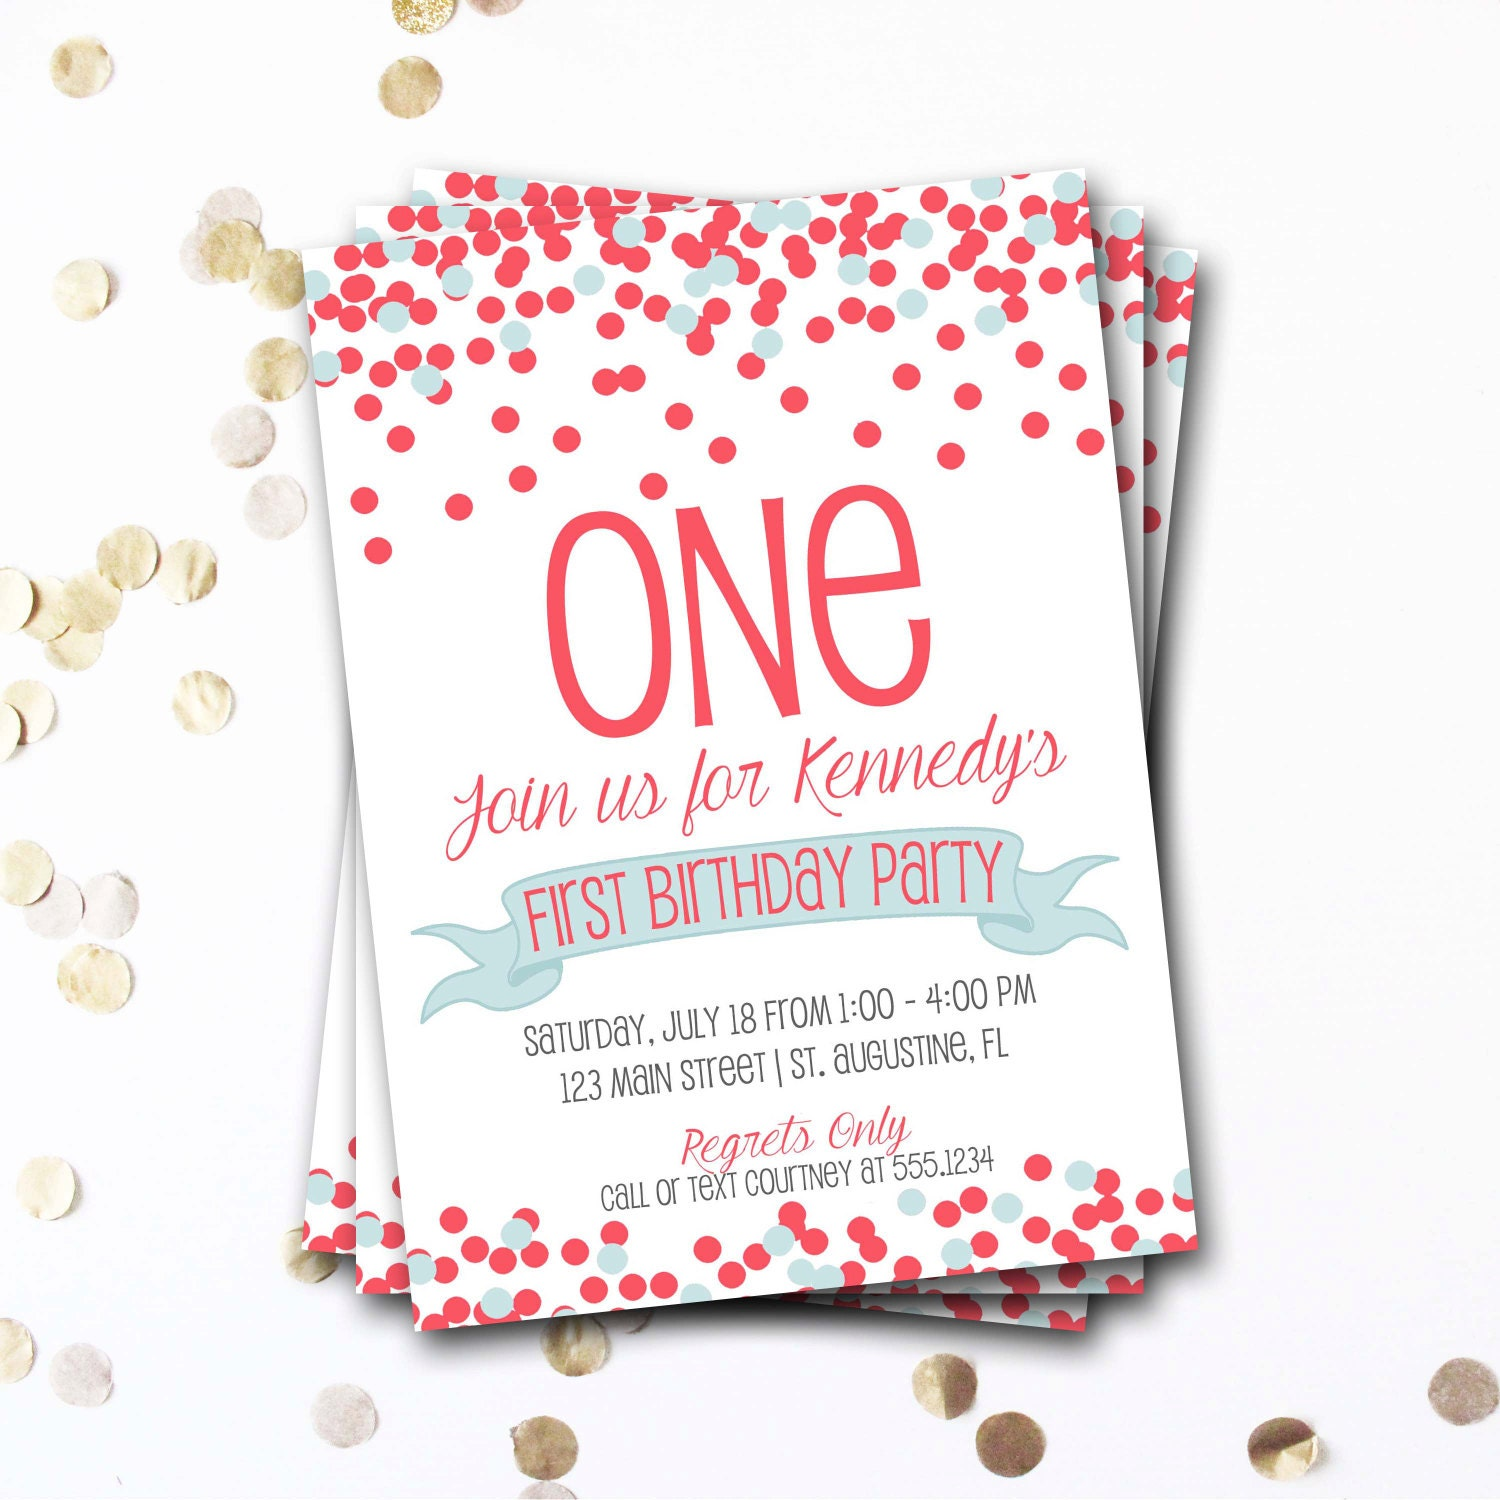 Confetti birthday invitation coral blue birthday invitation confetti birthday invitation coral blue birthday invitation confetti invite 1st birthday neutral birthday girl birthday diy printable filmwisefo